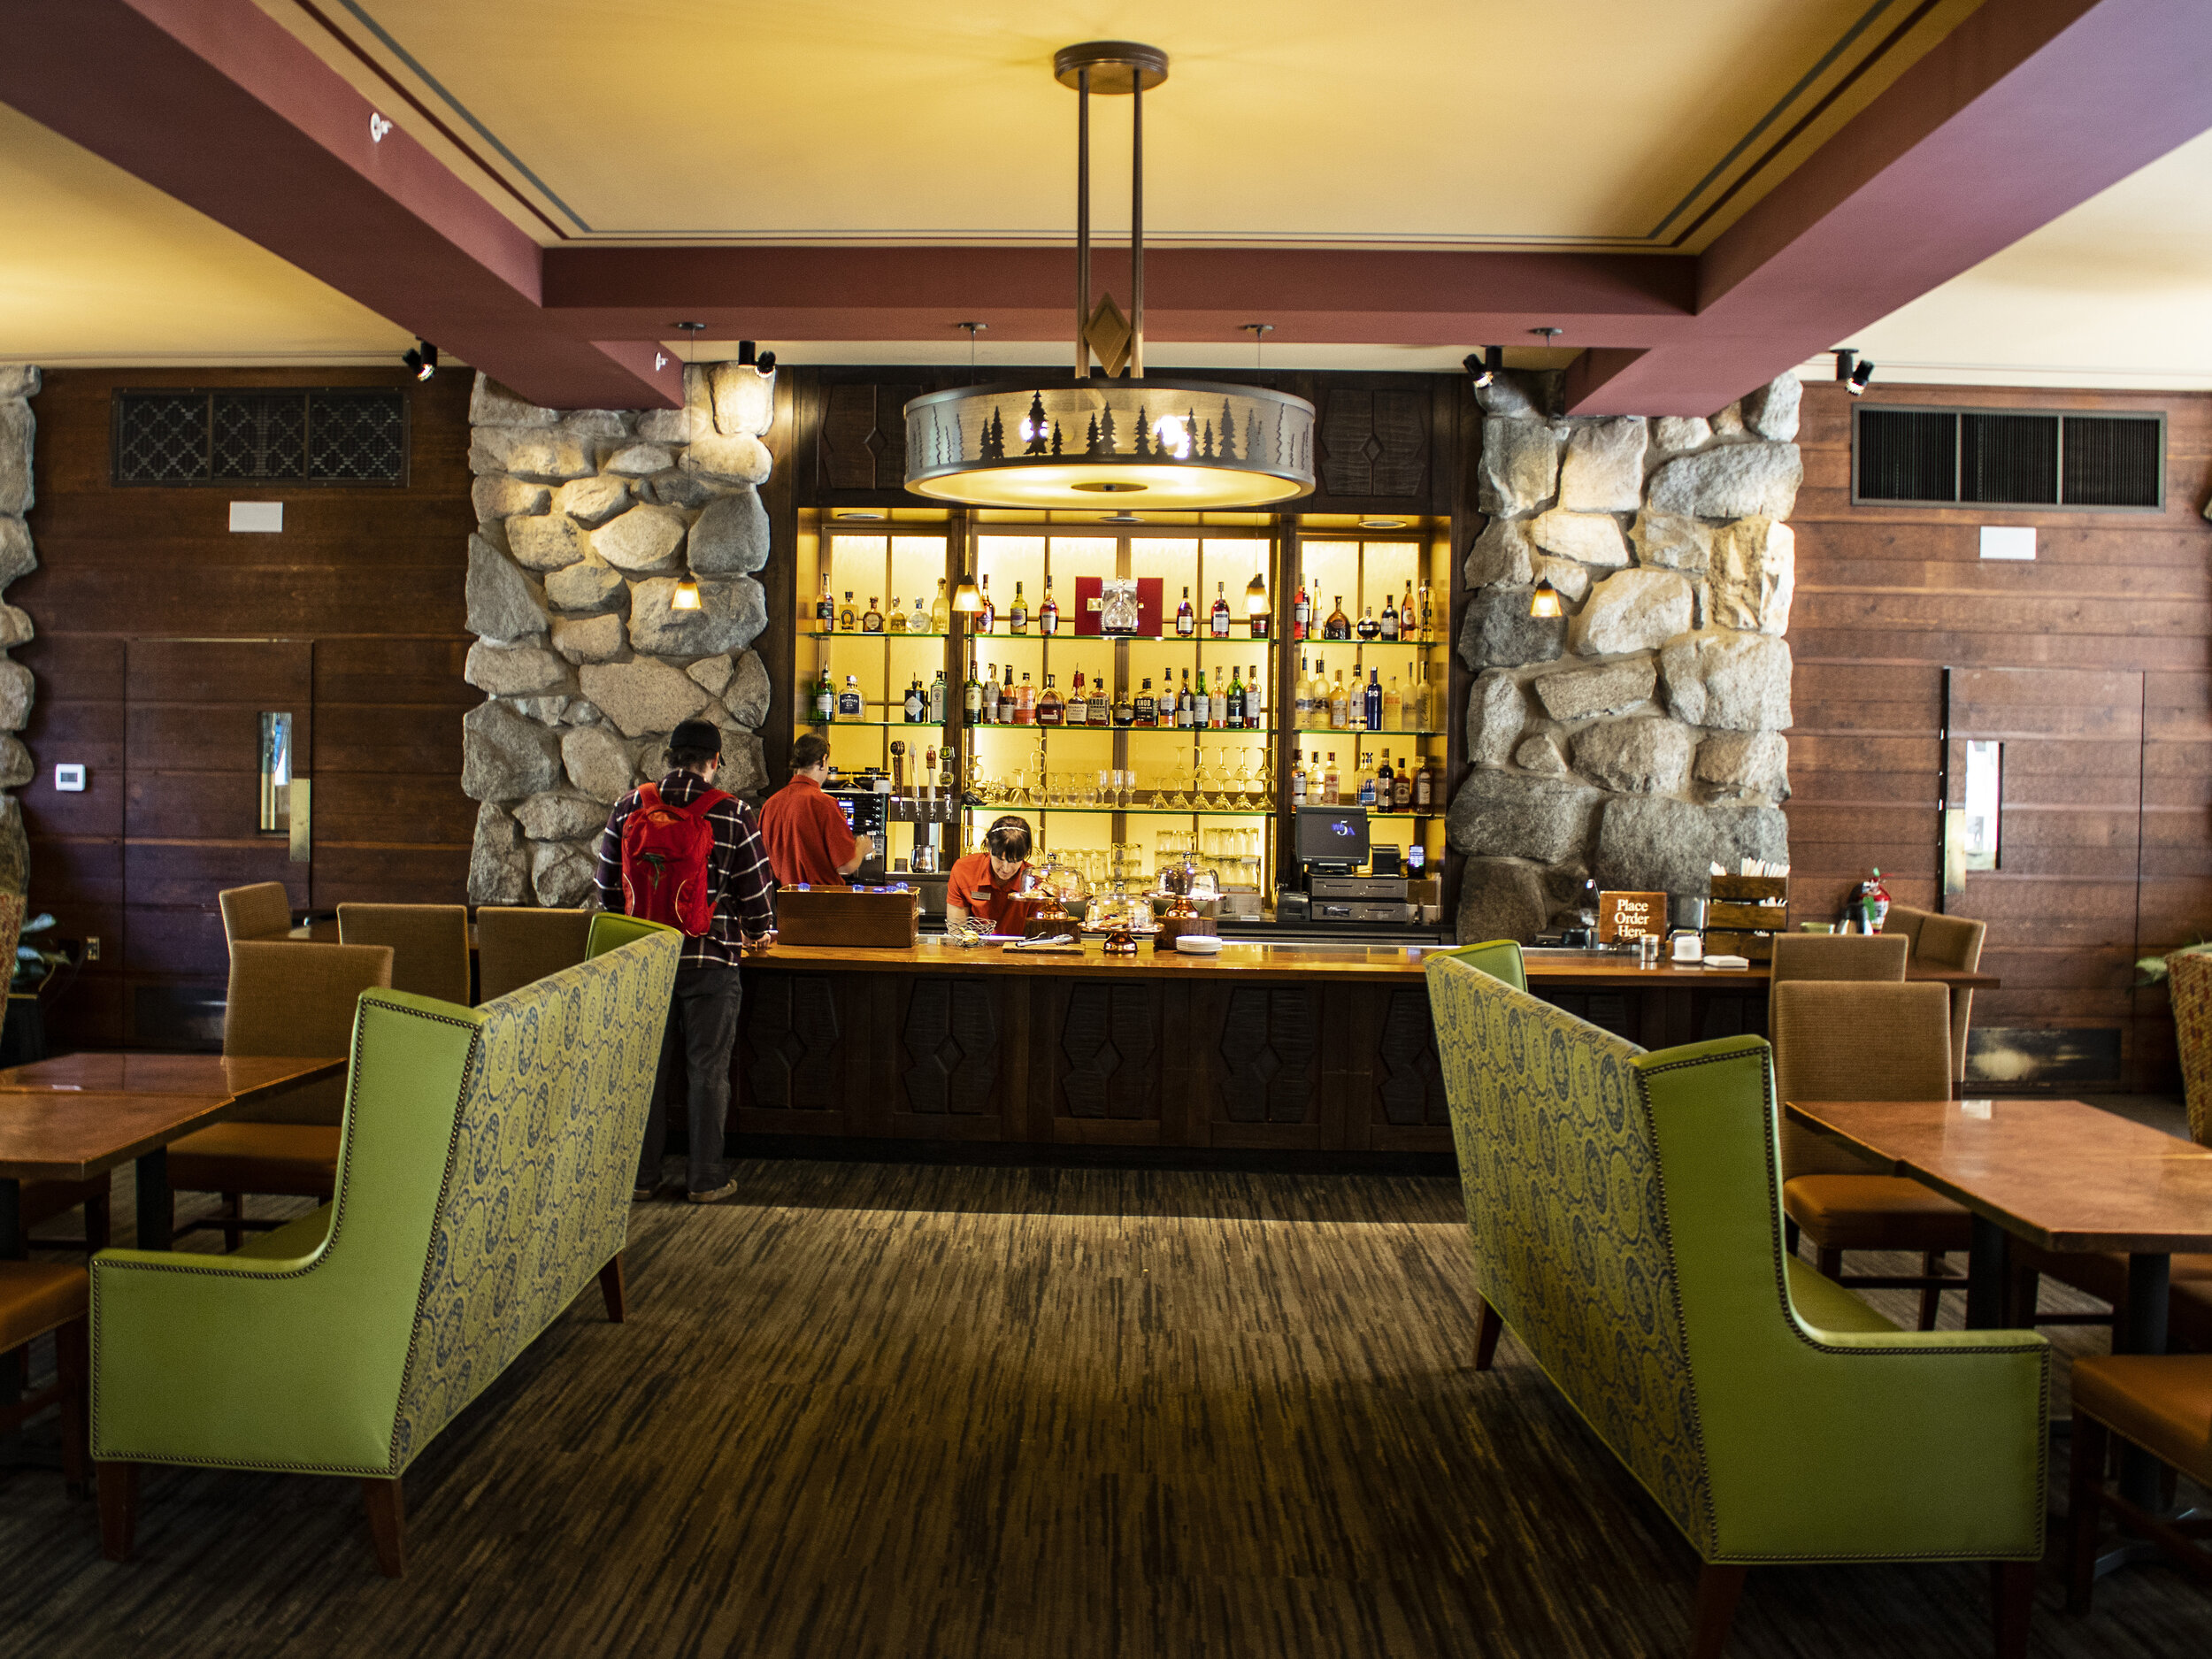 Yosemite National Park_Yosemite-Hotel_Bar.jpg